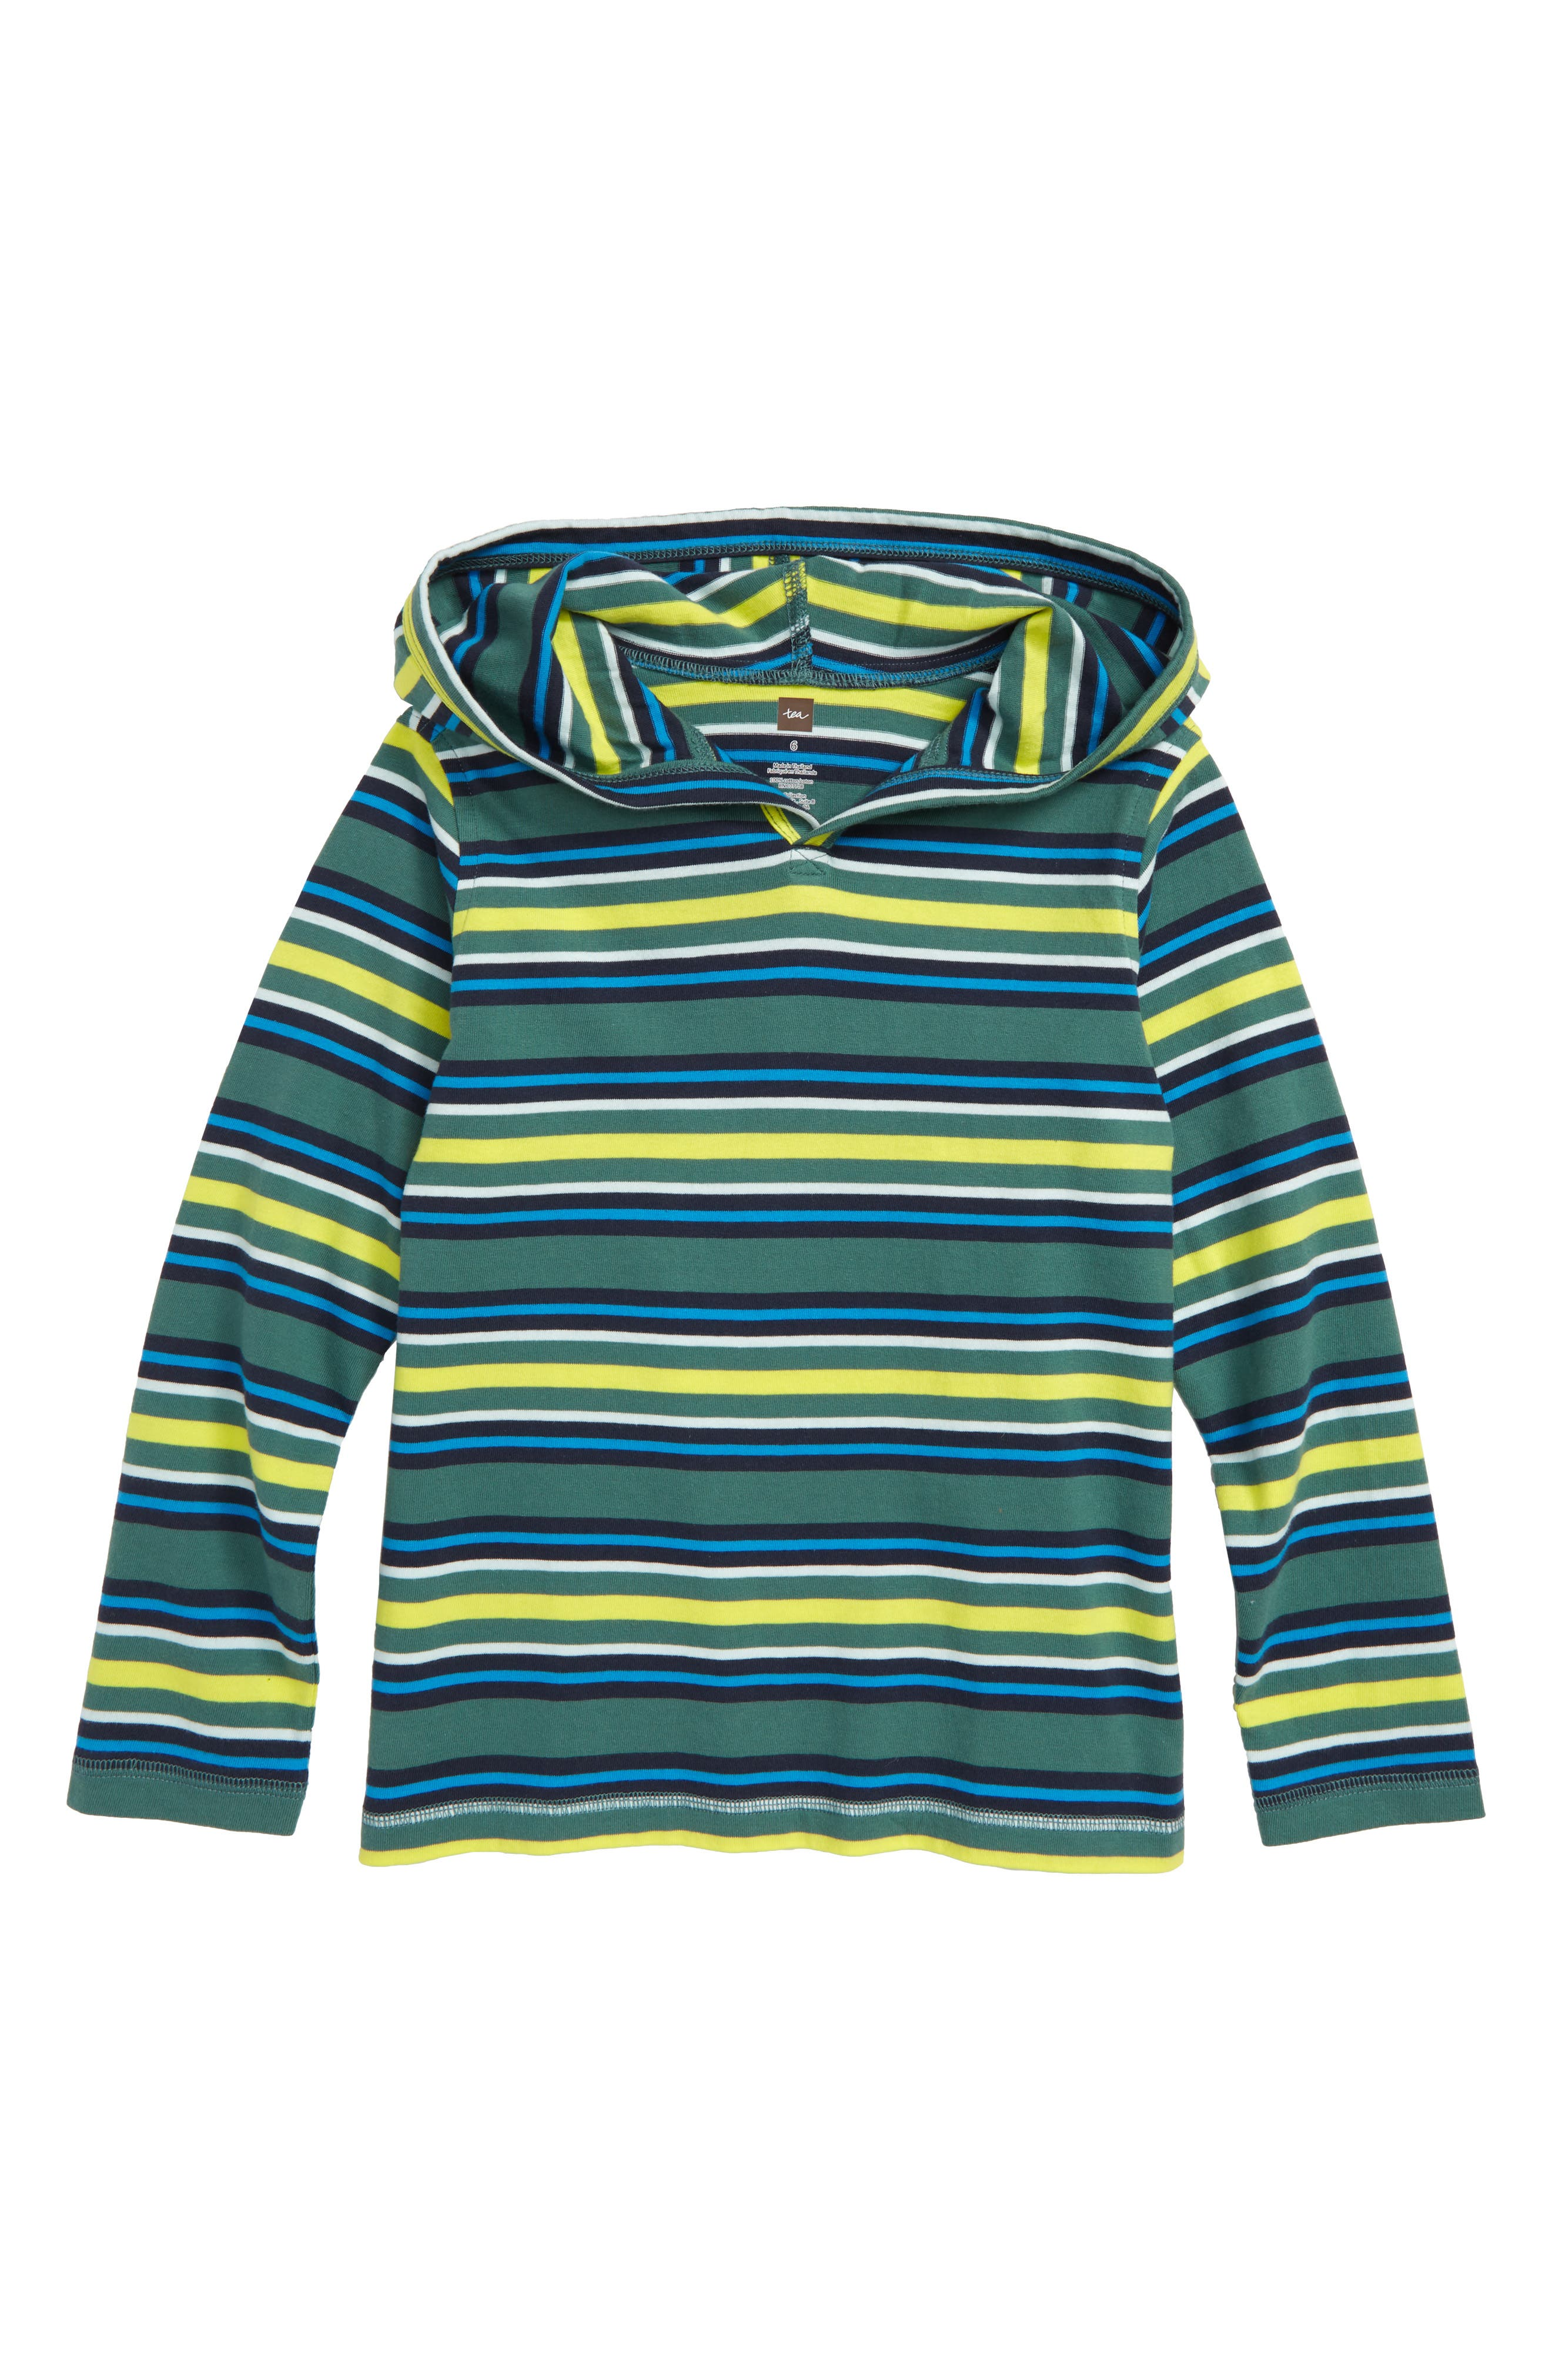 Happy Stripe Hoodie,                             Main thumbnail 1, color,                             Foliage